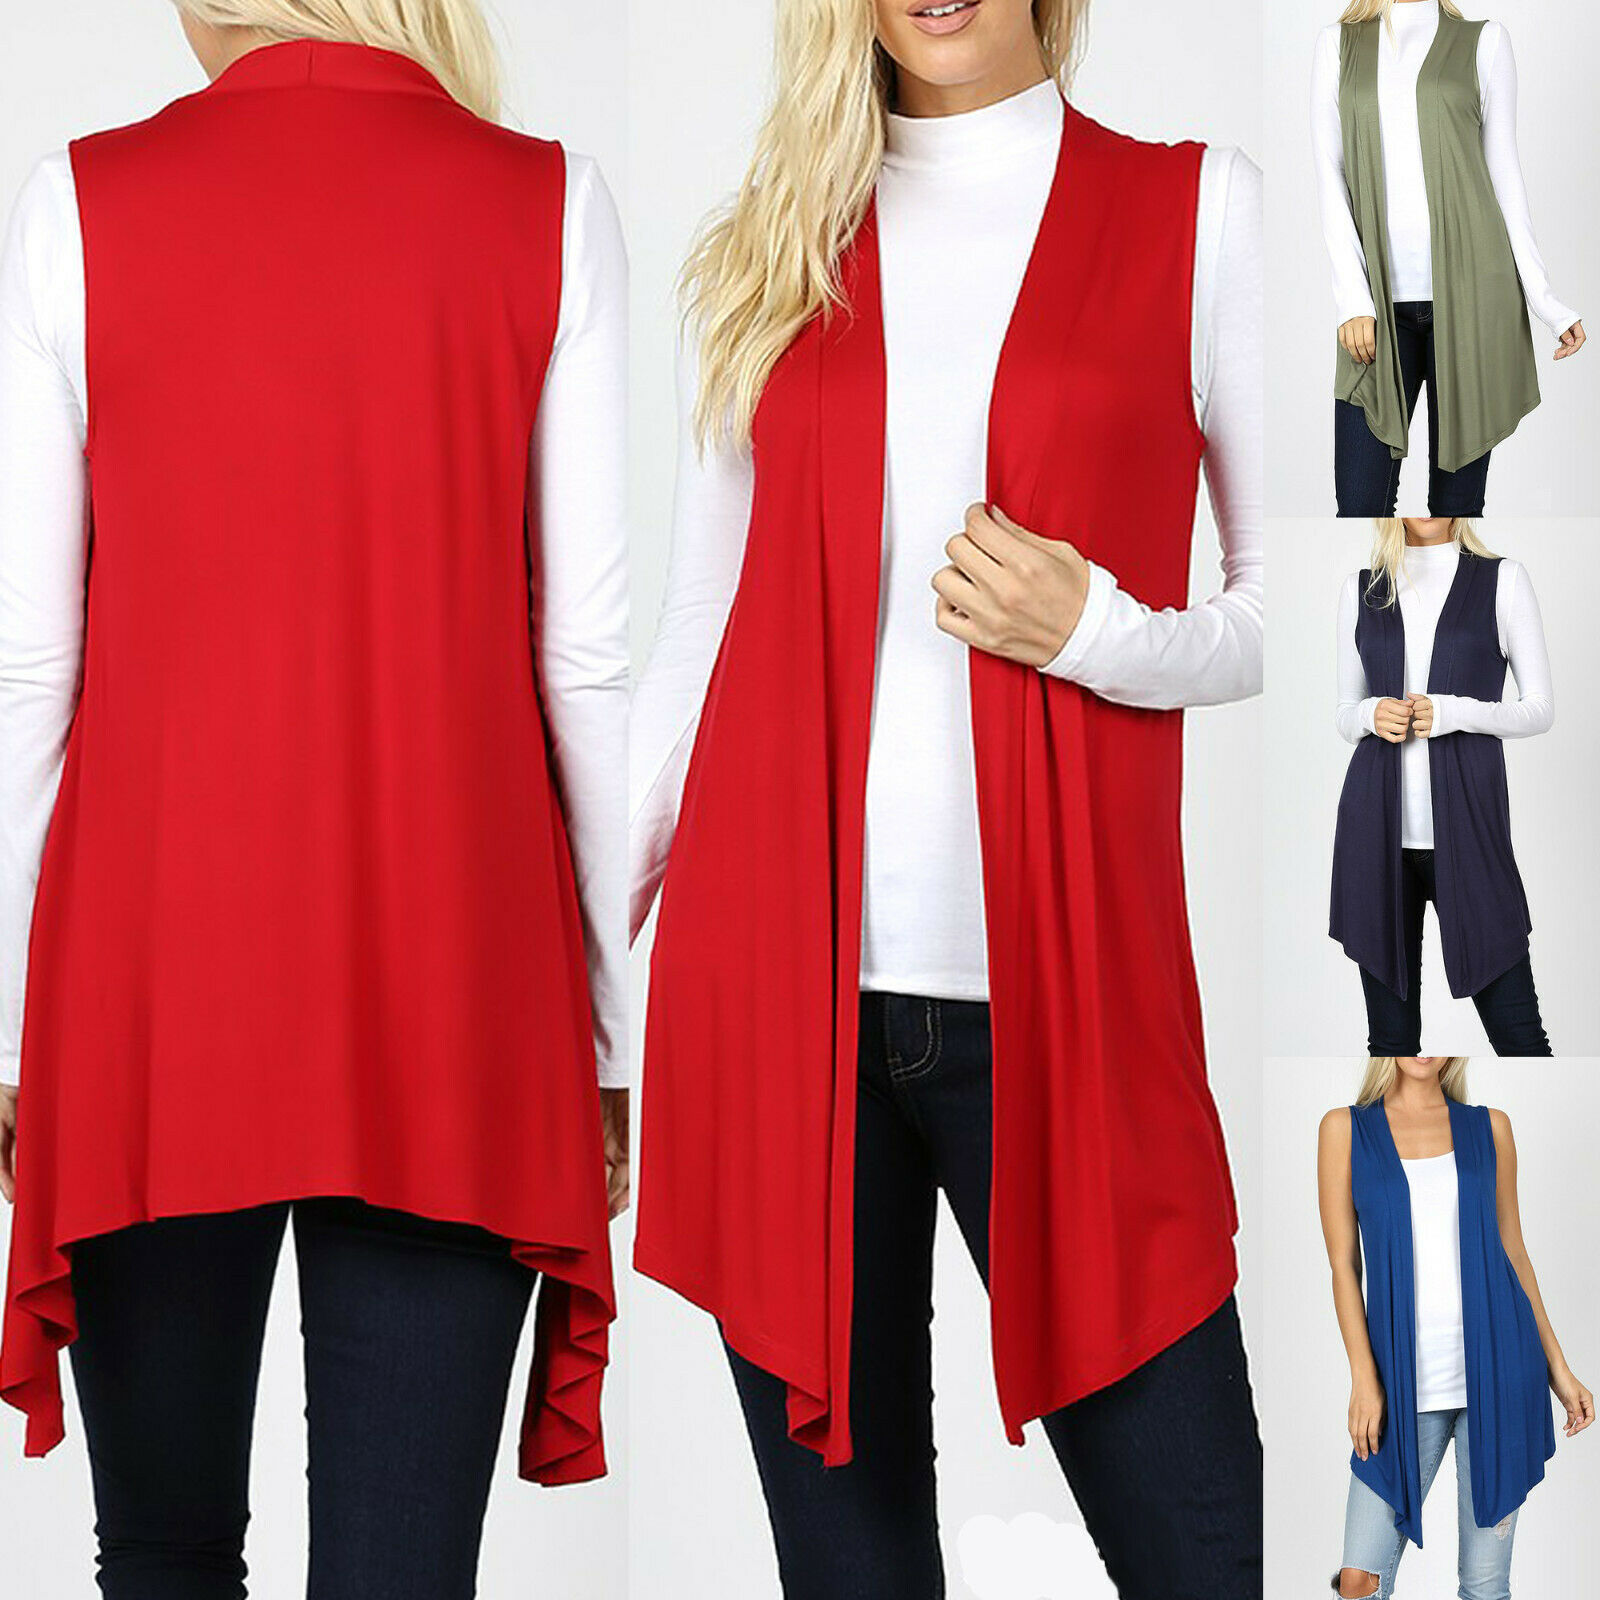 Sleeveless Cardigan Vest Womens Long Tunic Top Drape Open Front Waterfall Casual Clothing, Shoes & Accessories